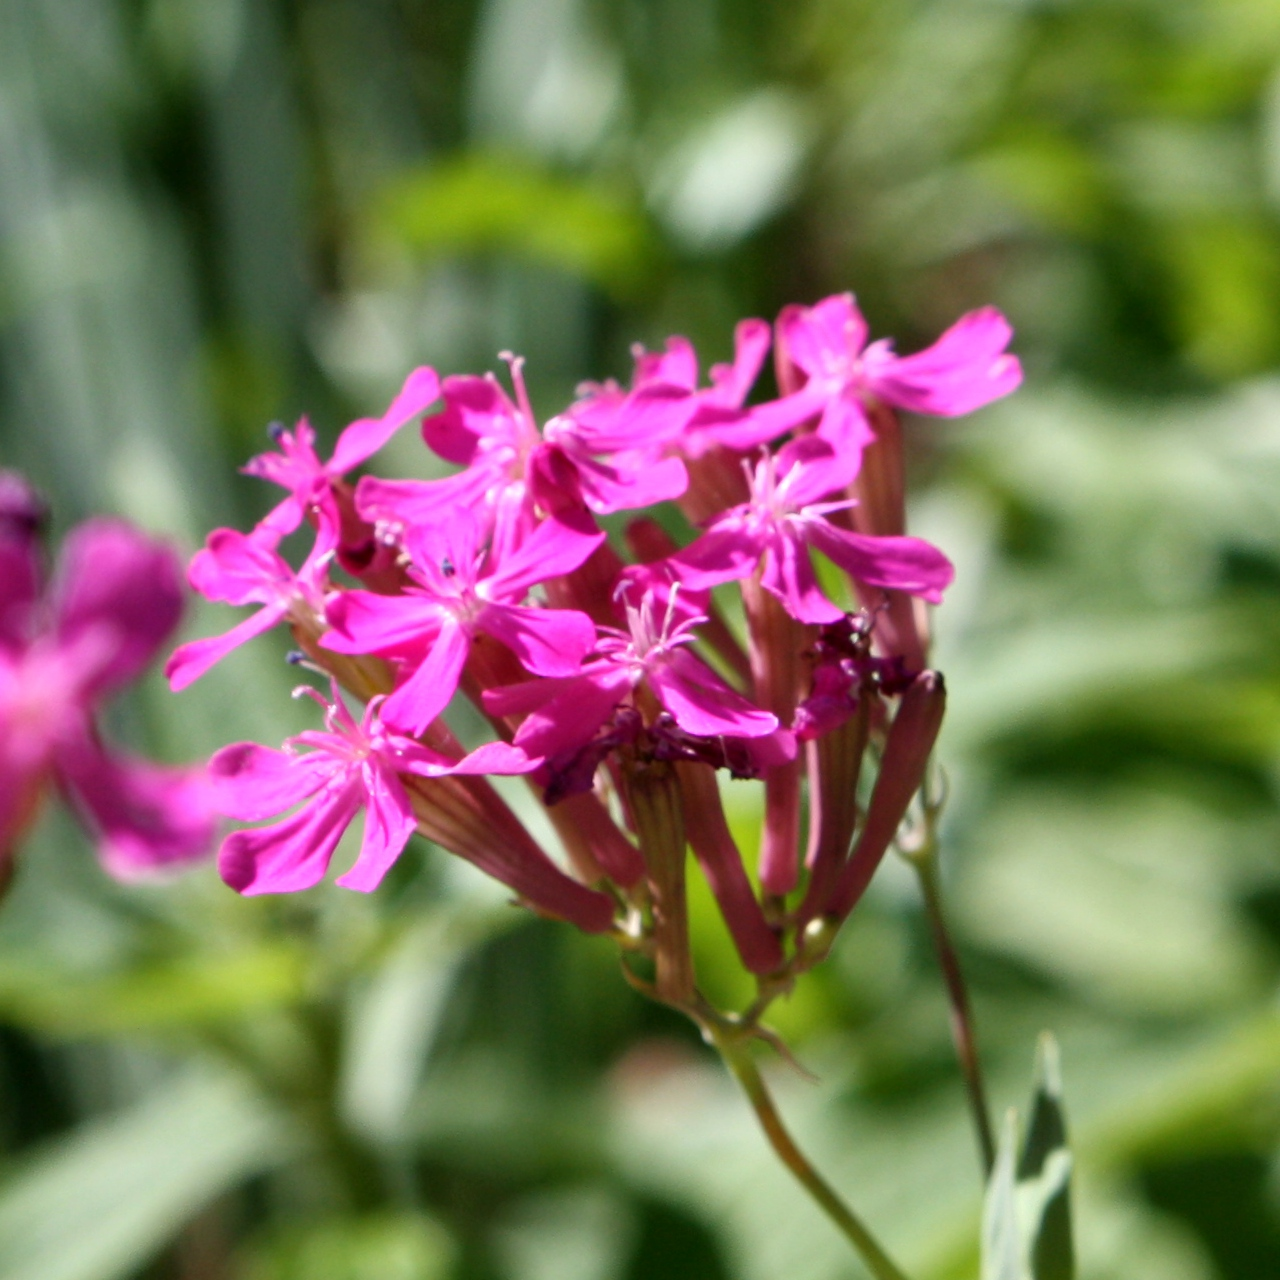 Pink catchfly wildflower blossoms photos public domain pink catchfly wildflower blossoms mightylinksfo